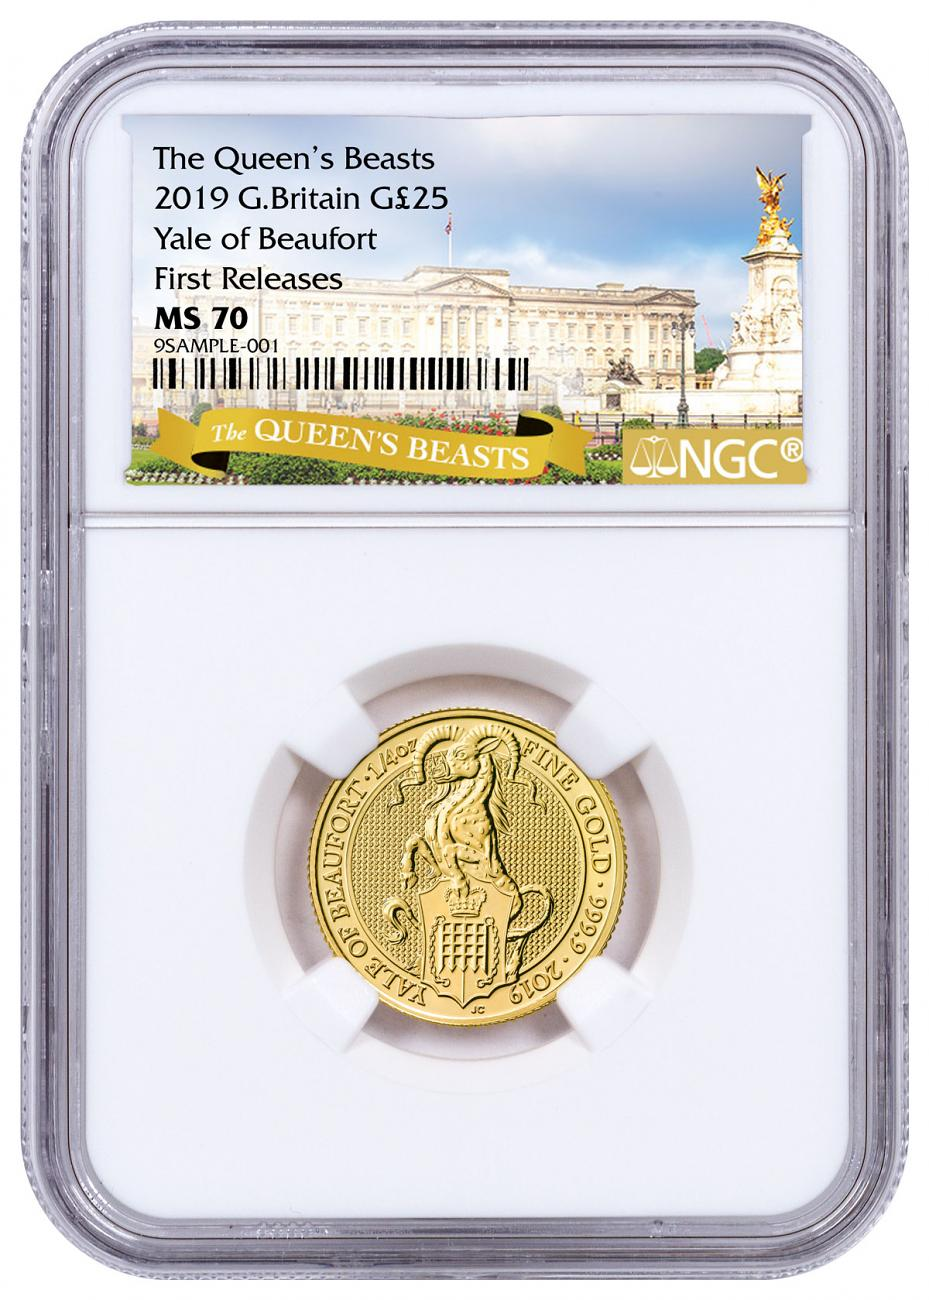 2019 Great Britain 1/4 oz Gold Queen's Beasts - The Yale of Beaufort £25 Coin NGC MS70 FR